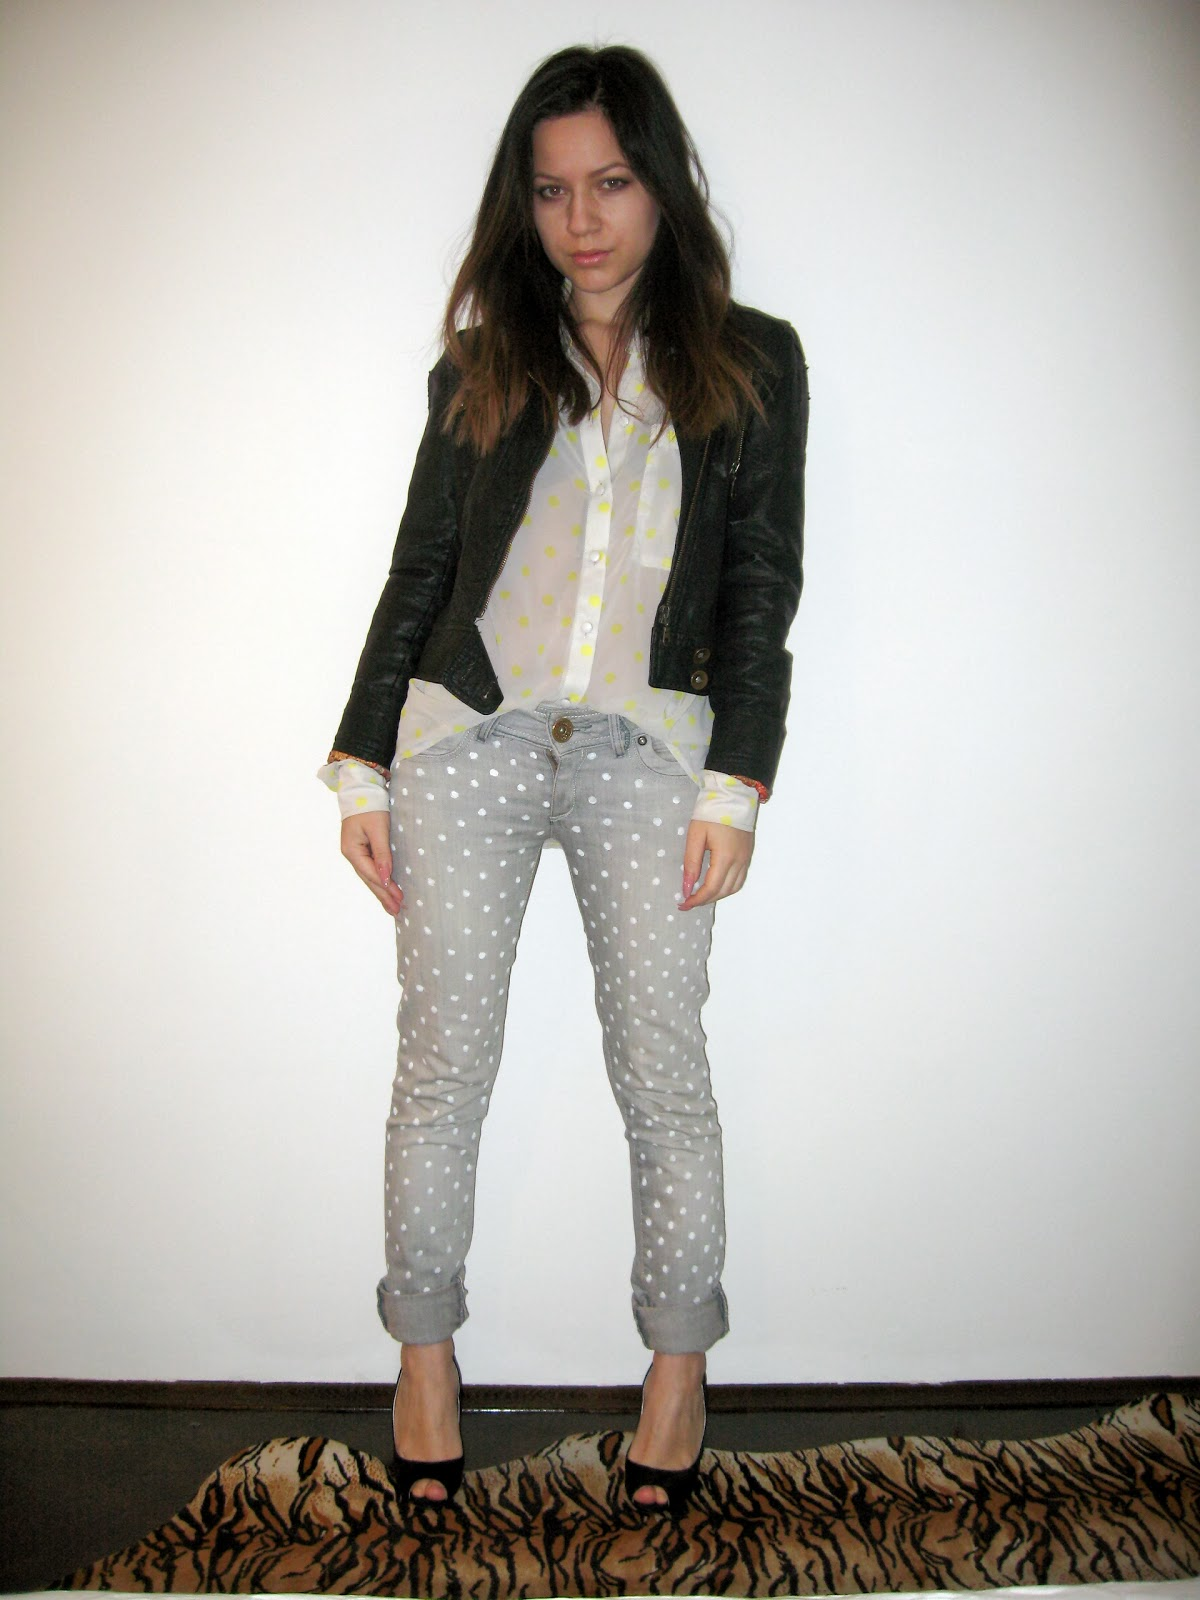 grey jeans with polka dots, sheer blouse with polka dots, black faux leather jacket, black pip toe heels